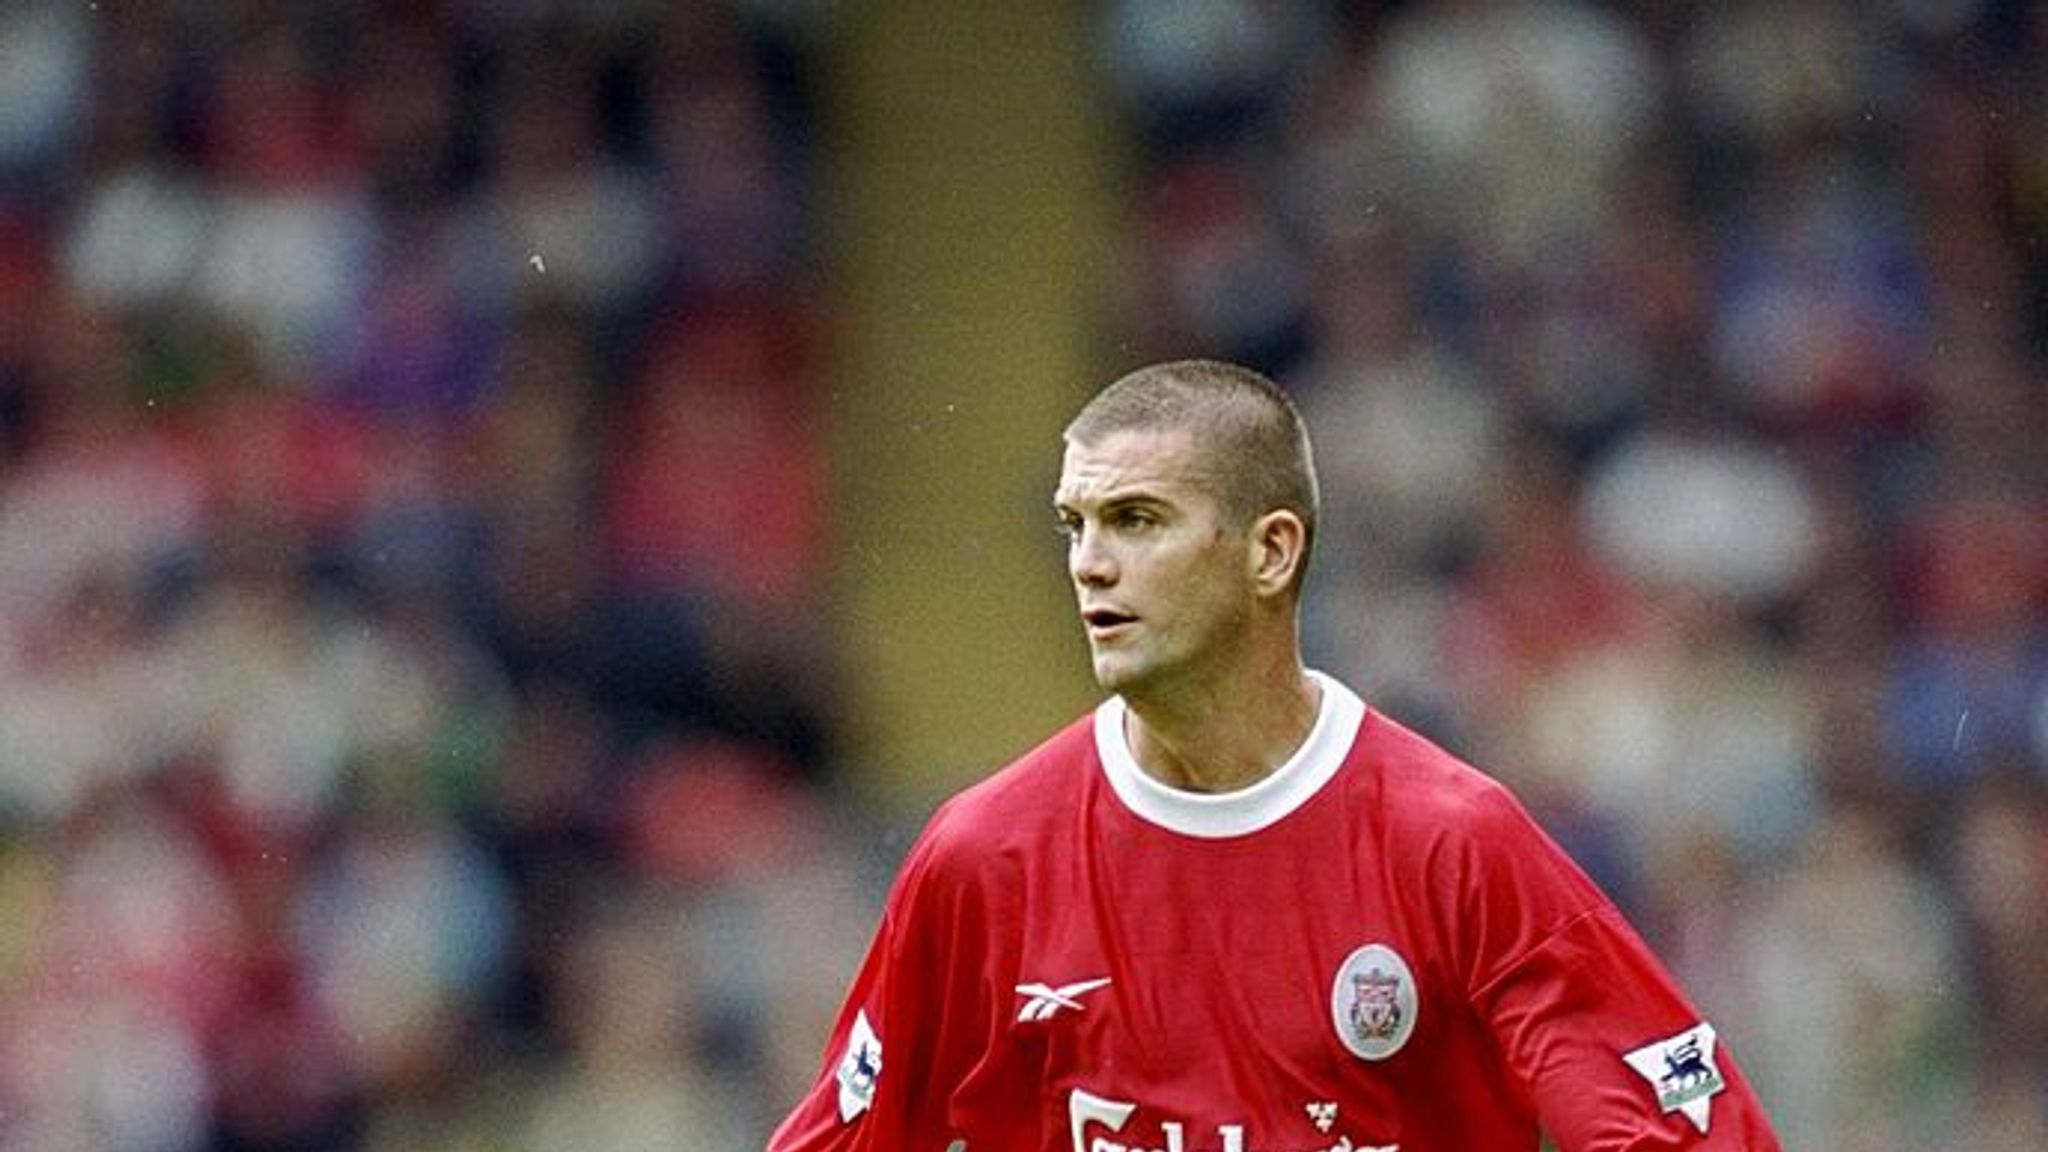 Liverpool offer support for Dominic Matteo after he underwent surgery on a brain tumour